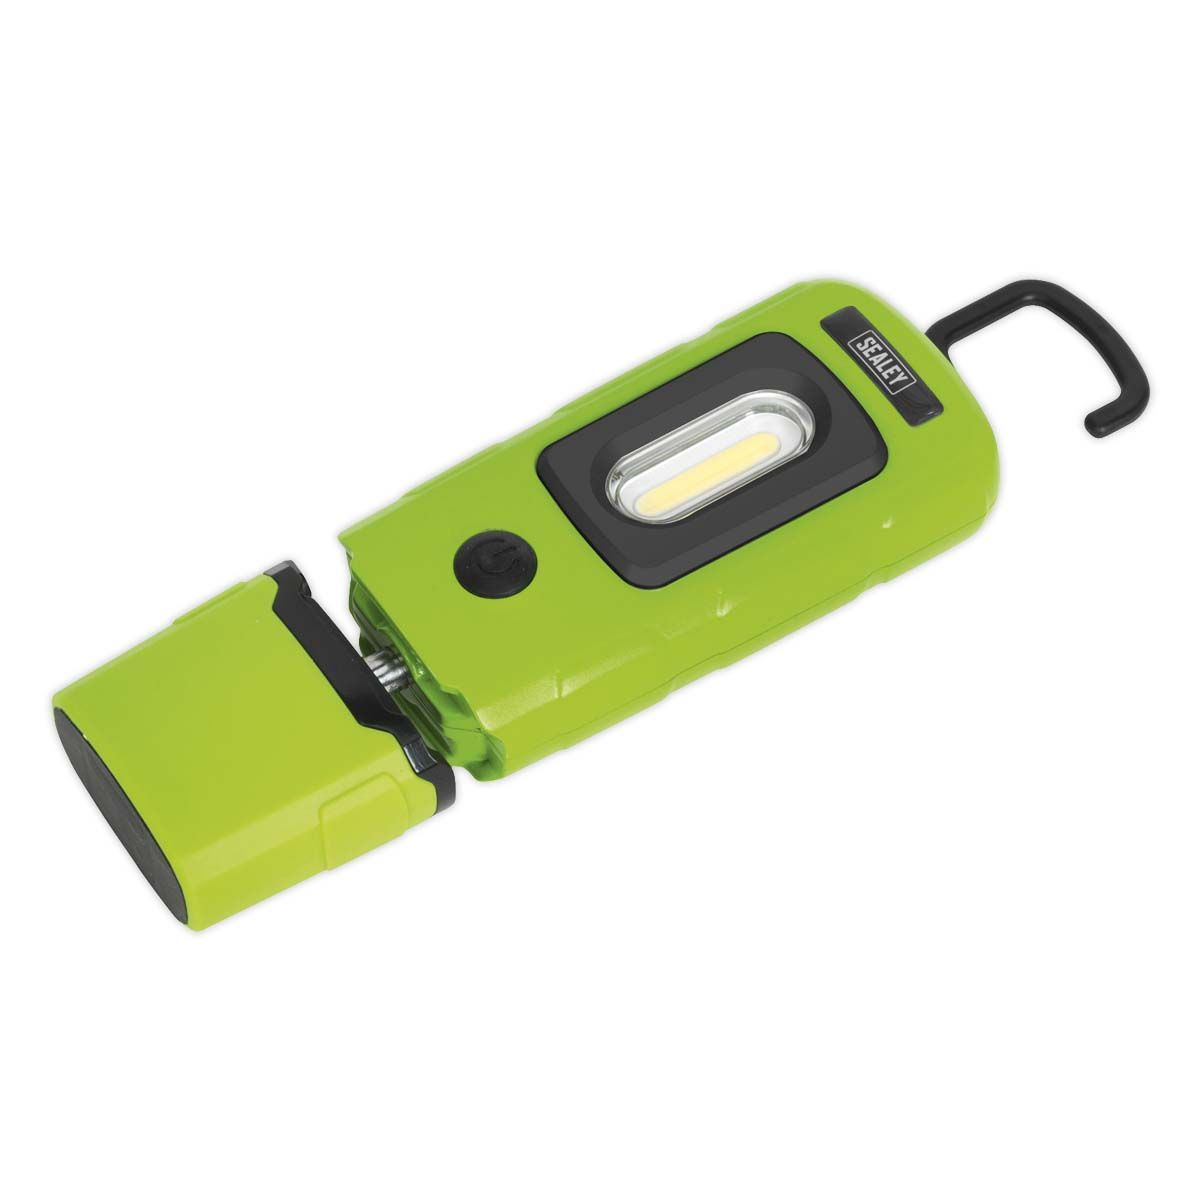 Sealey Rechargeable 360° Inspection Lamp 3W COB + 1W LED Green Lithium-Polym